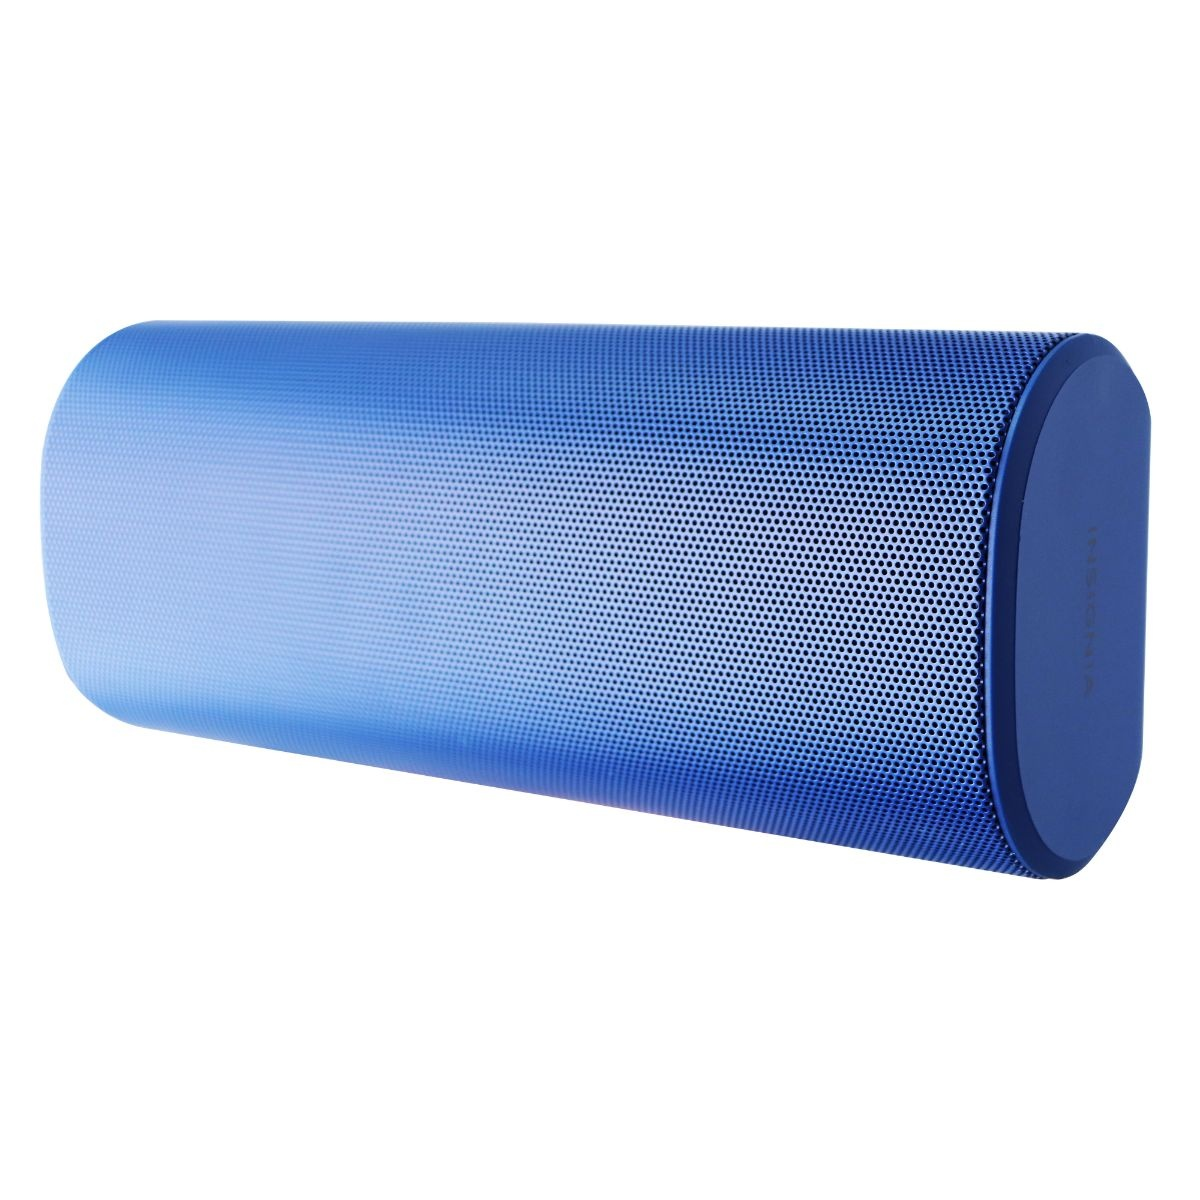 Insignia BRICK 2 Portable Bluetooth Speaker - Blue (NS-SPBTBRICK2-BL)